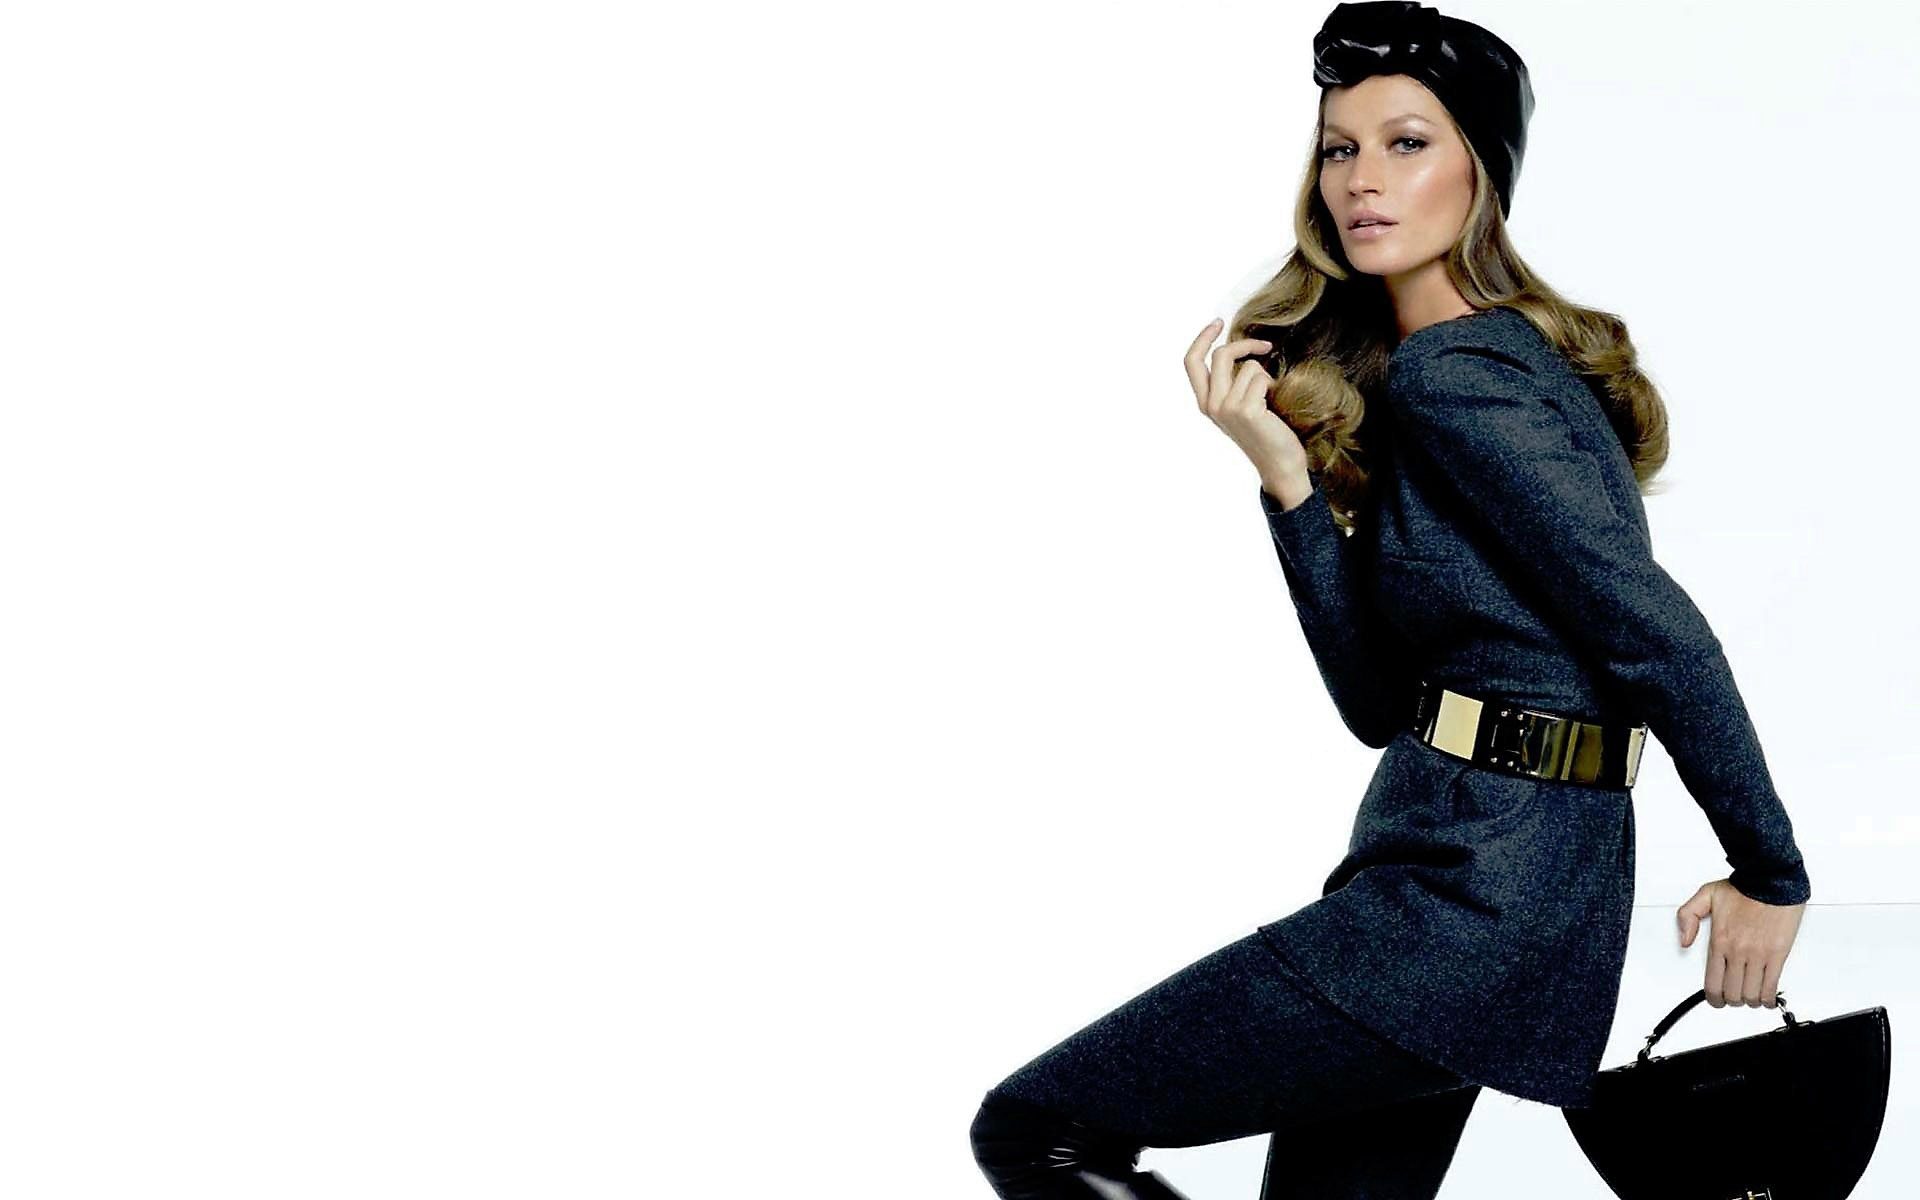 Gisele Bundchen in a hat on white background for free use